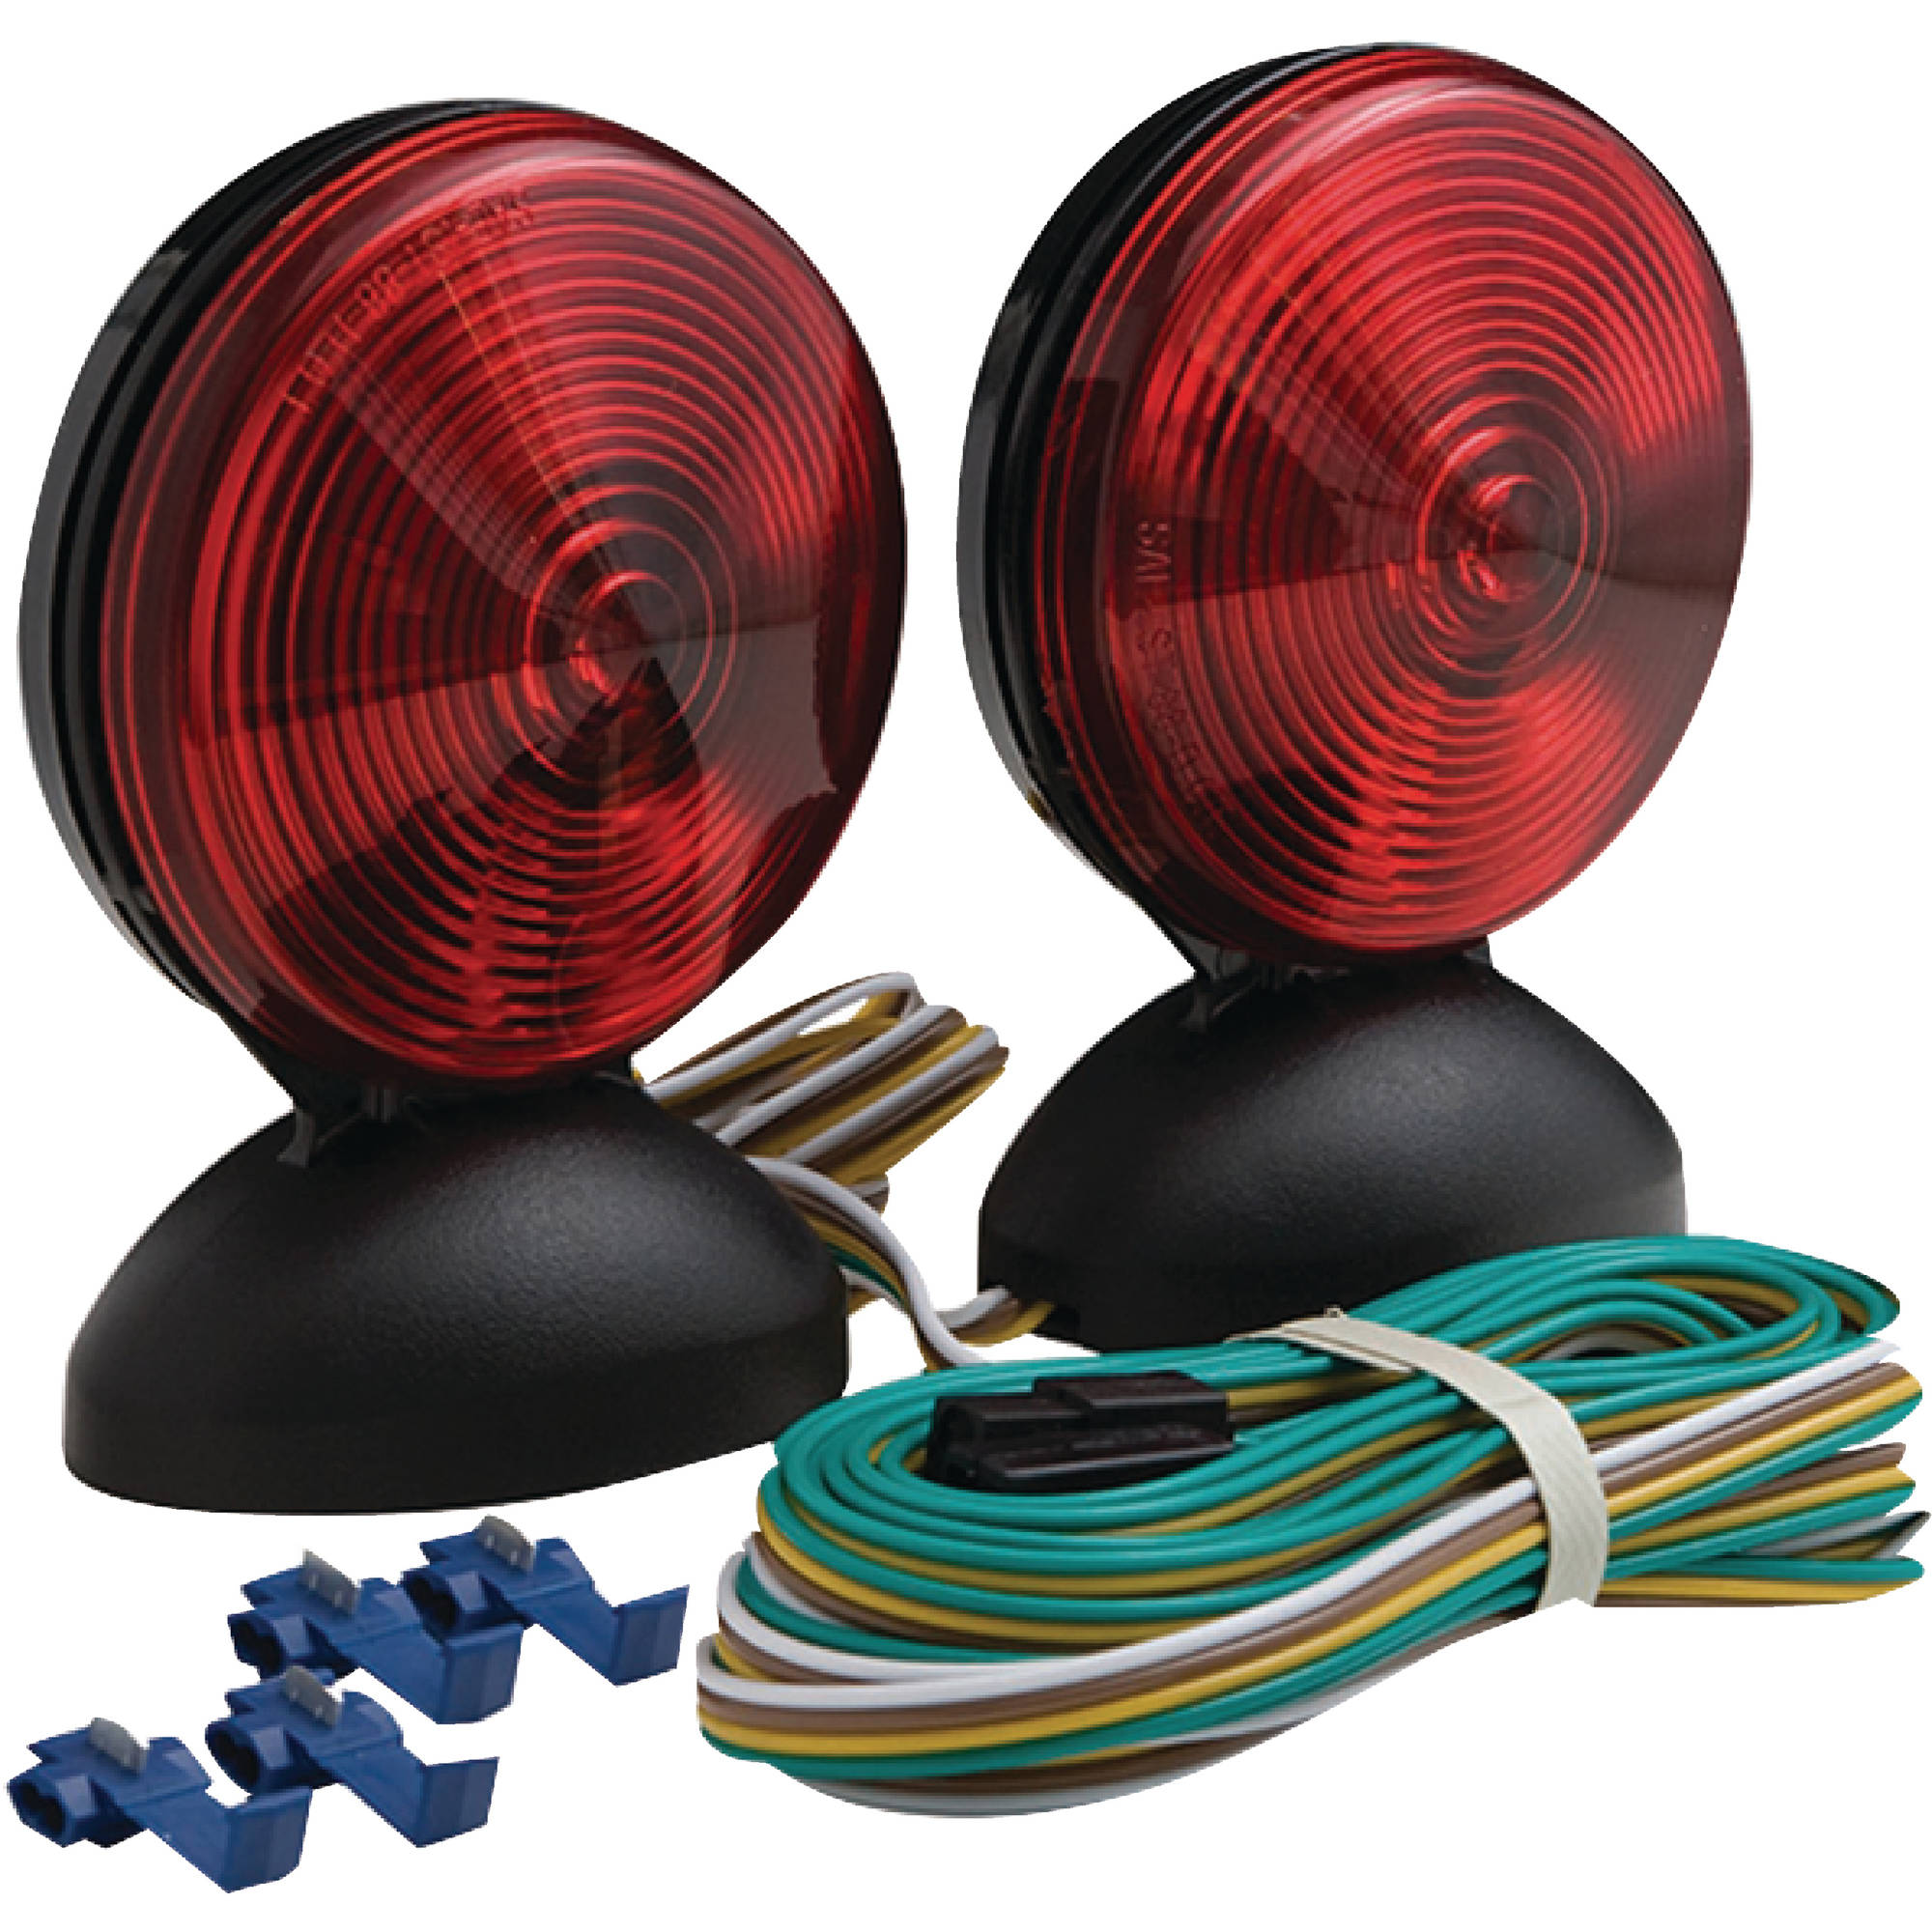 Optronics TL22RK Magnet Mount Towing Light Kit, Includes 20' Wishbone Style Wiring Harness